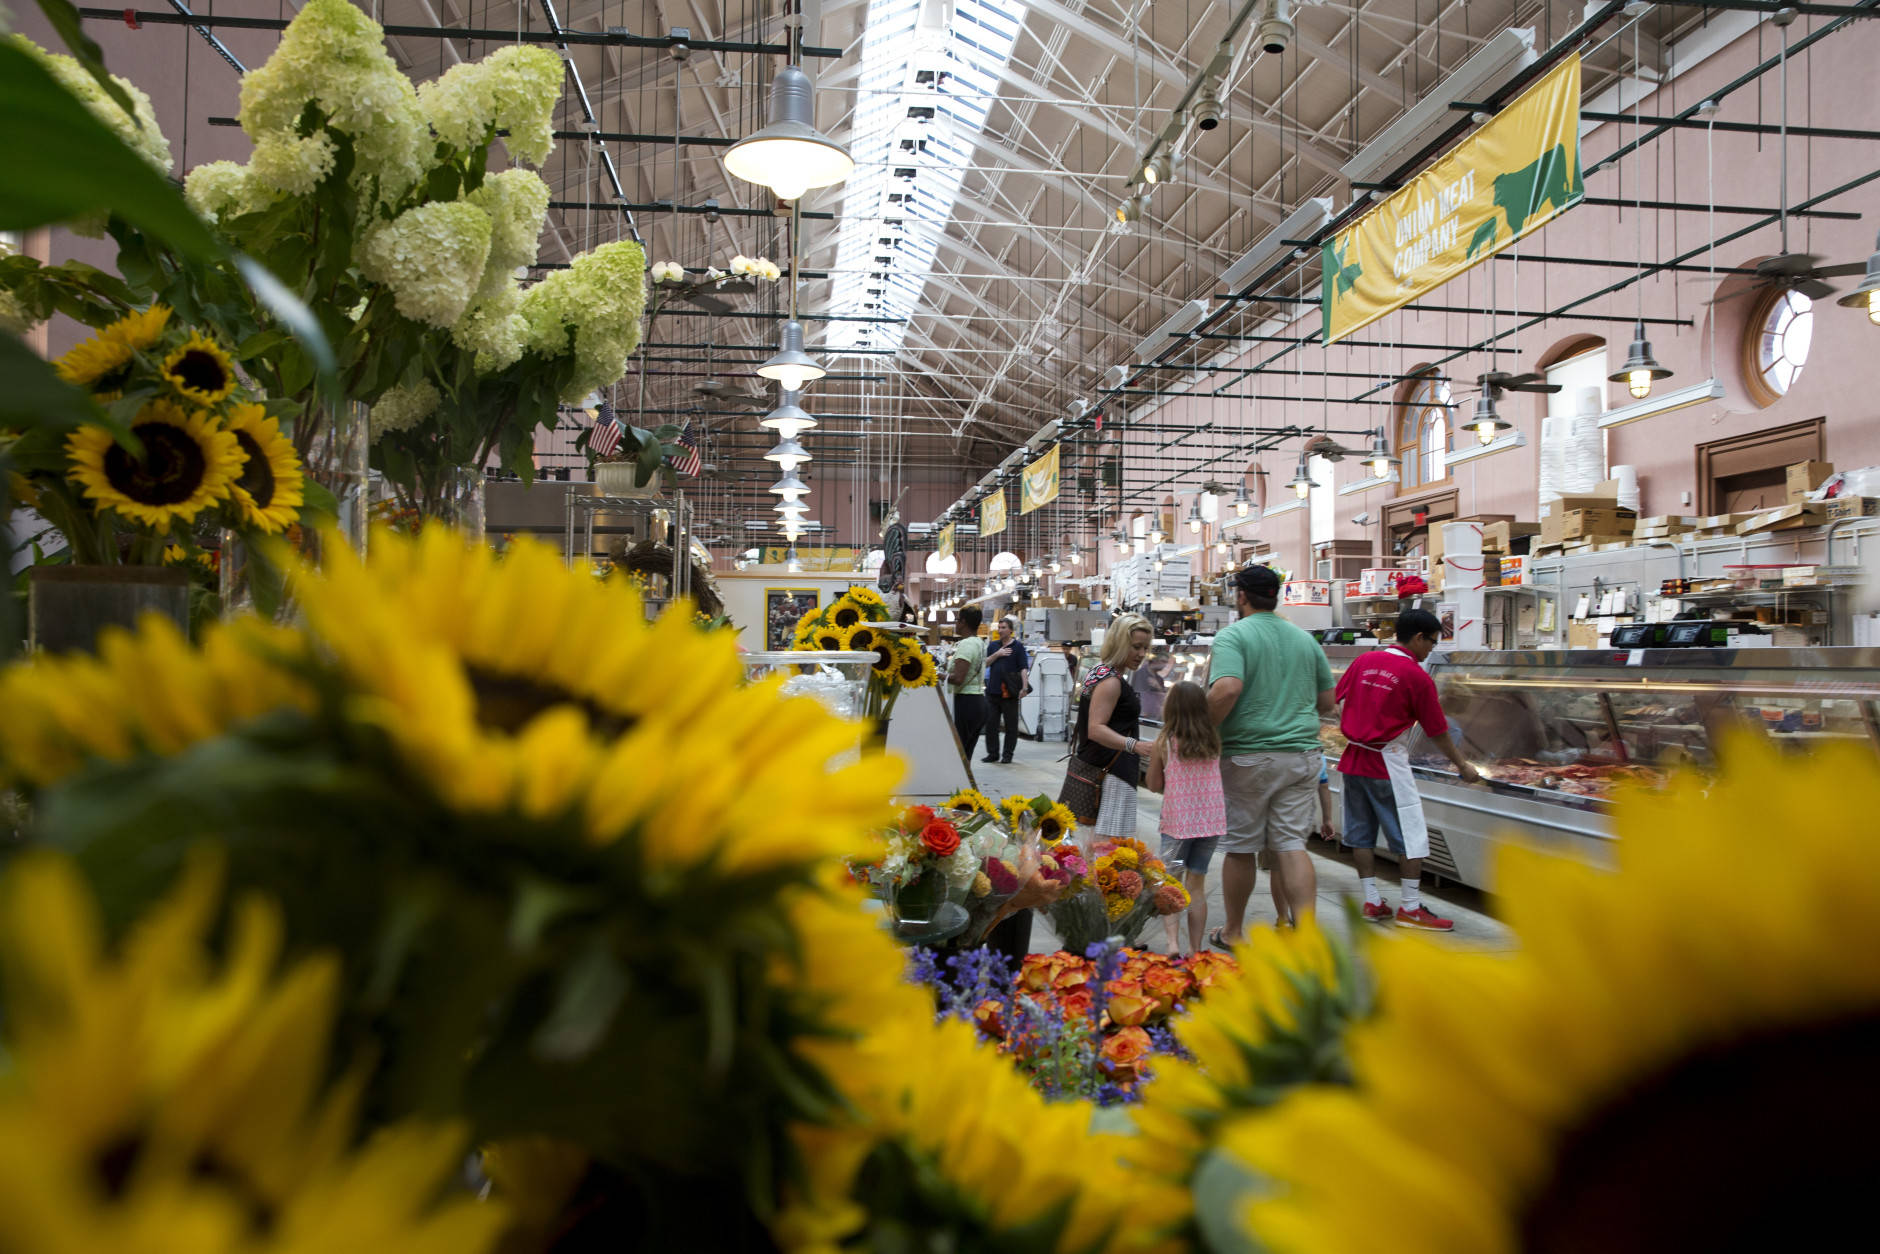 """<p><strong>Walk around Eastern Market</strong></p> <p>Not too far from the Library of Congressis D.C.&#8217;s <a href=""""http://easternmarket-dc.org/"""" target=""""_blank"""" rel=""""noopener noreferrer"""">Eastern Market</a>. On the weekends, farmers and artists set tents up outside the main building to sell their products. Restaurants and cafes line the main street, should you get hungry for a warm meal or a hot beverage.</p>"""